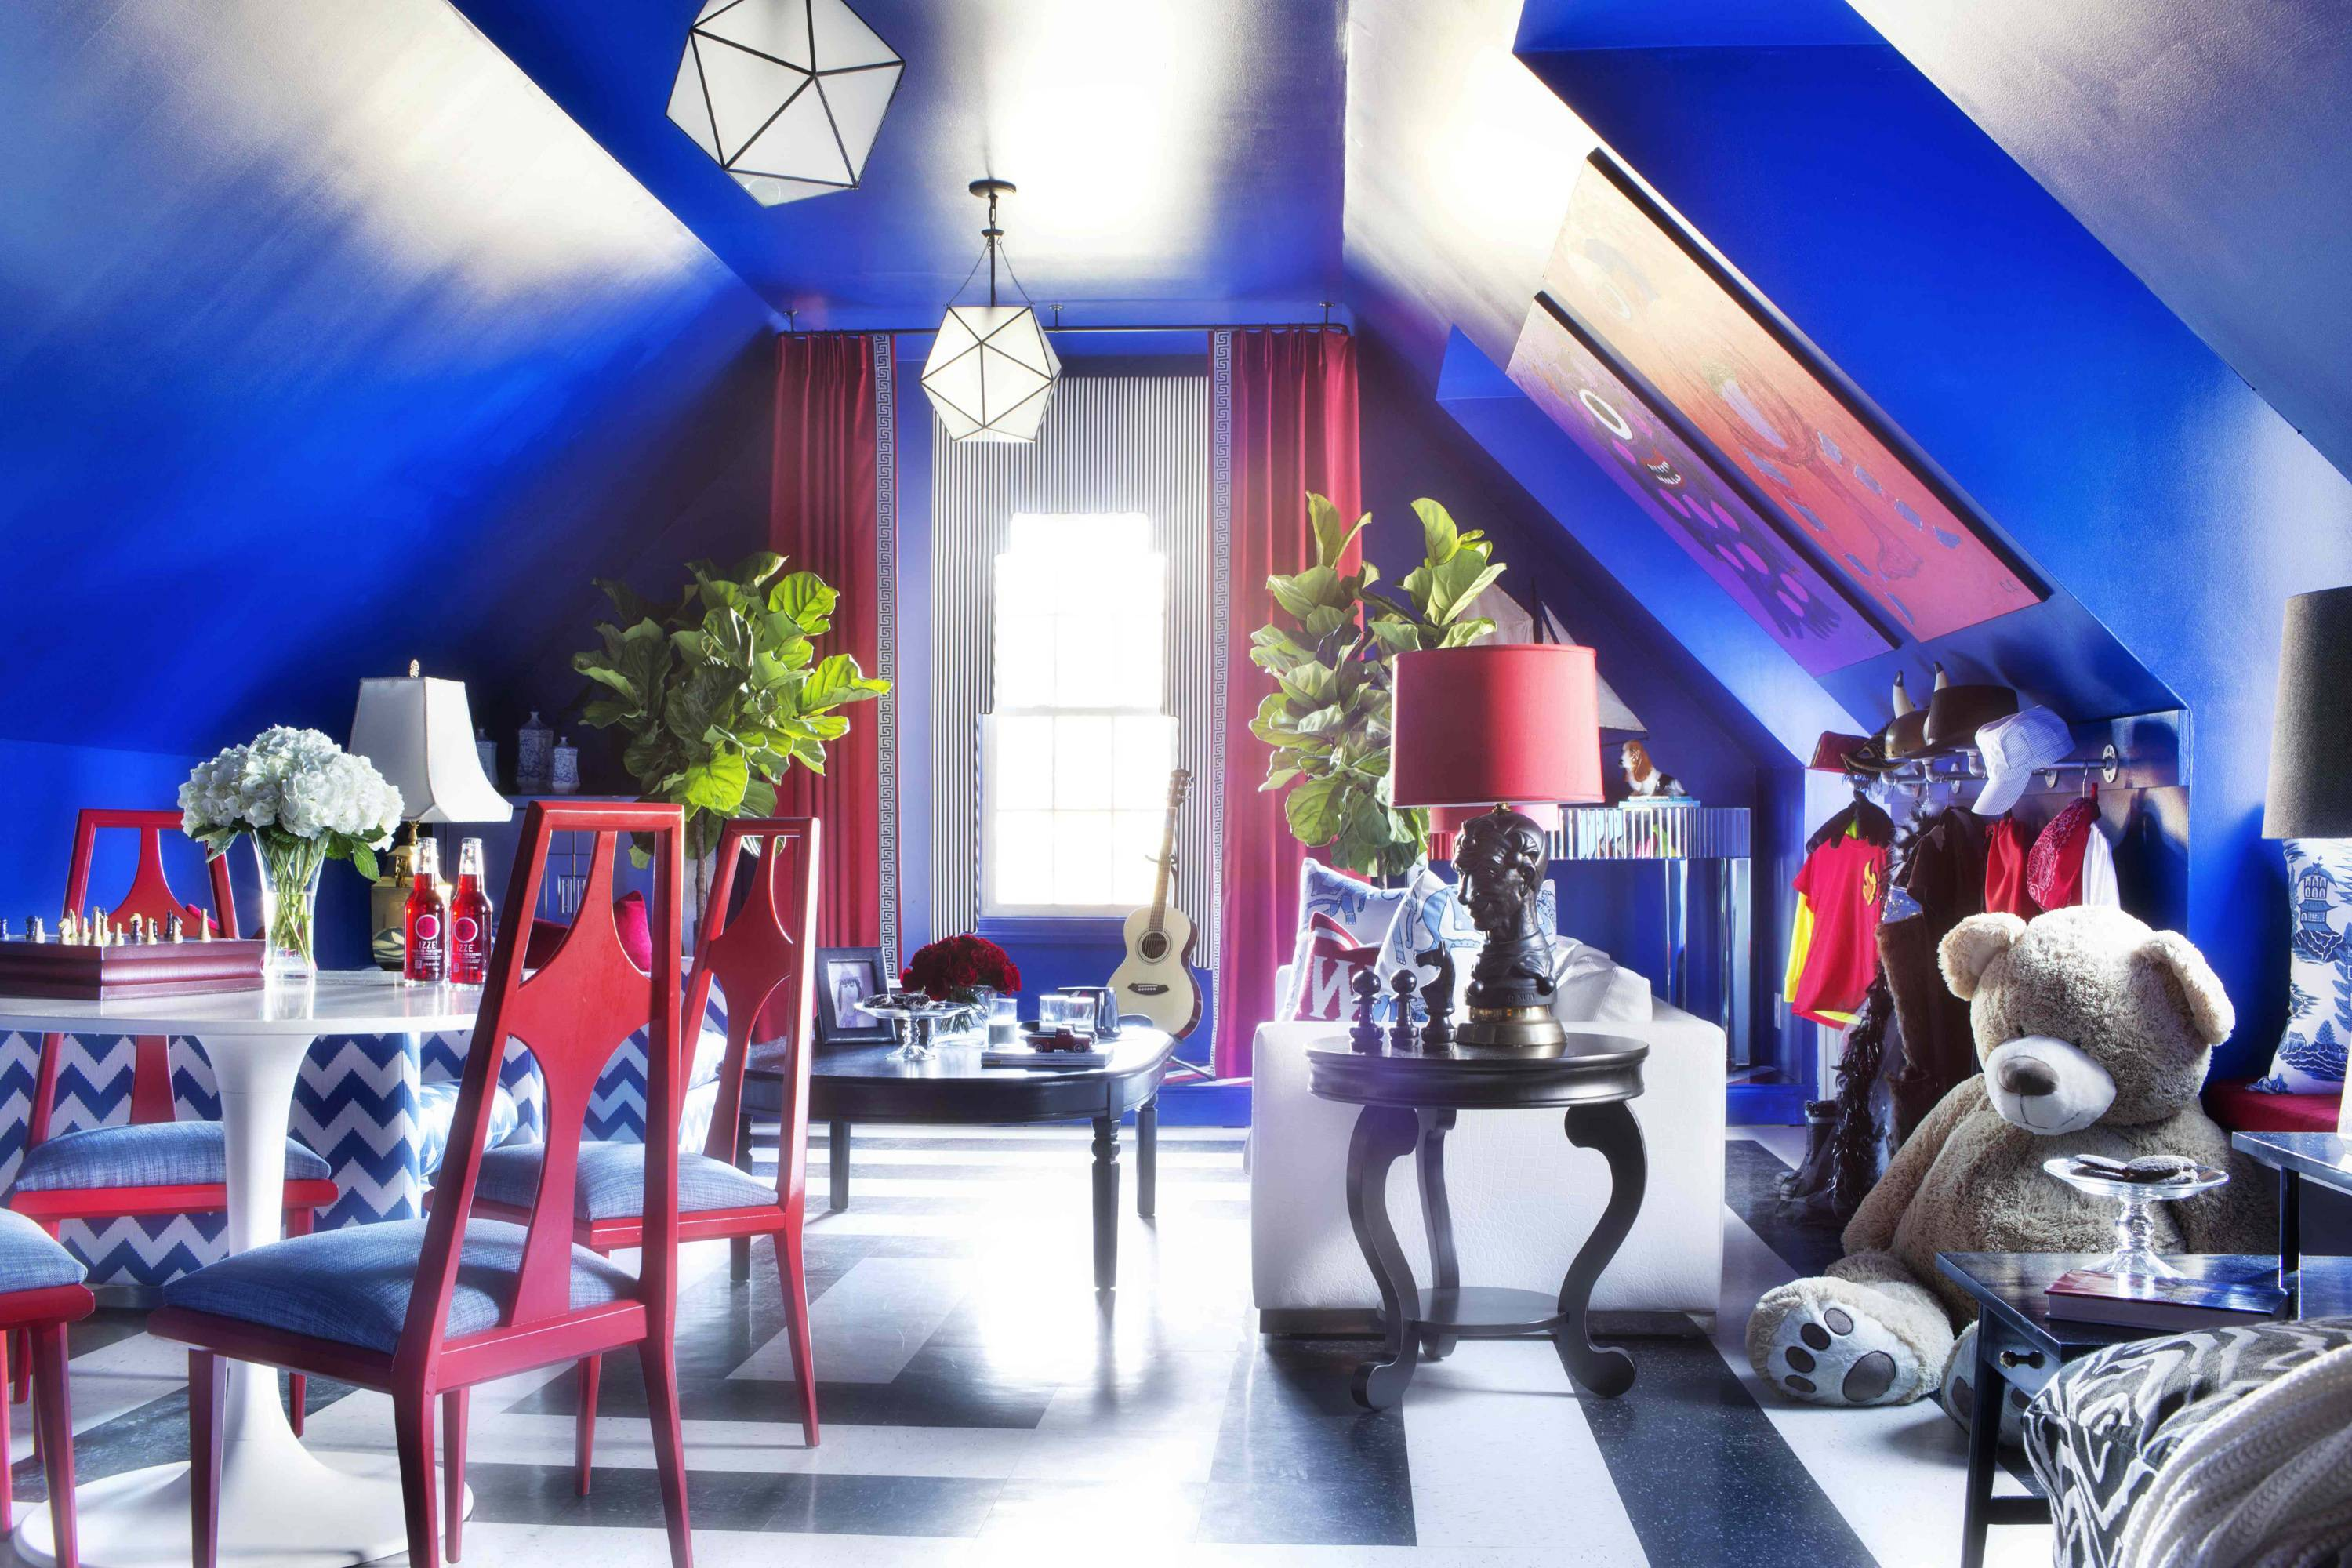 Klein Blue, also referred to as electric blue or midnight blue was used in this playroom designed by Brian Patrick Flynn. The designer suggests pairing the highly dramatic color with other bold hues like red, and keeping it all balanced with white or black.